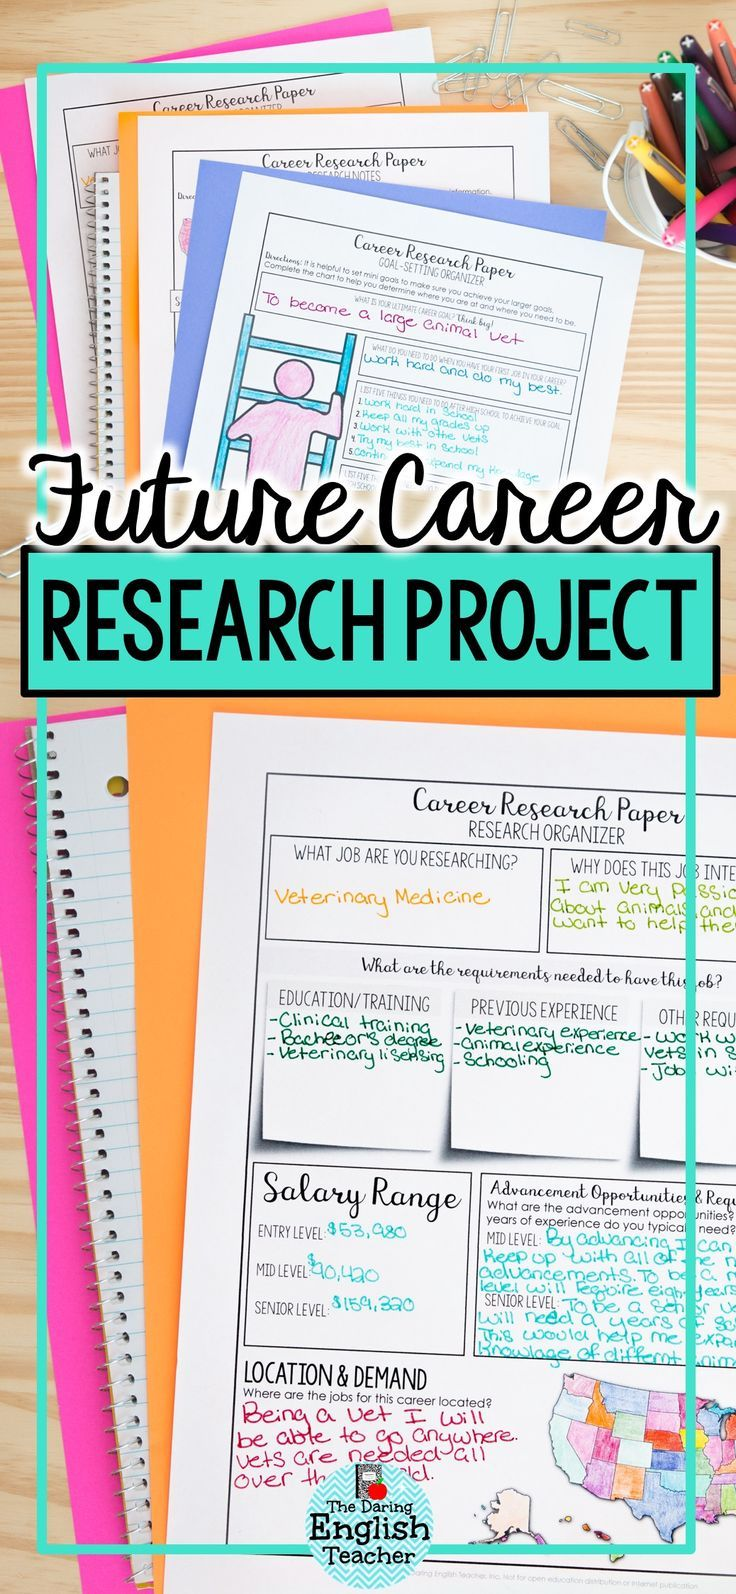 023 Research Paper Career Related Topics Singular Full